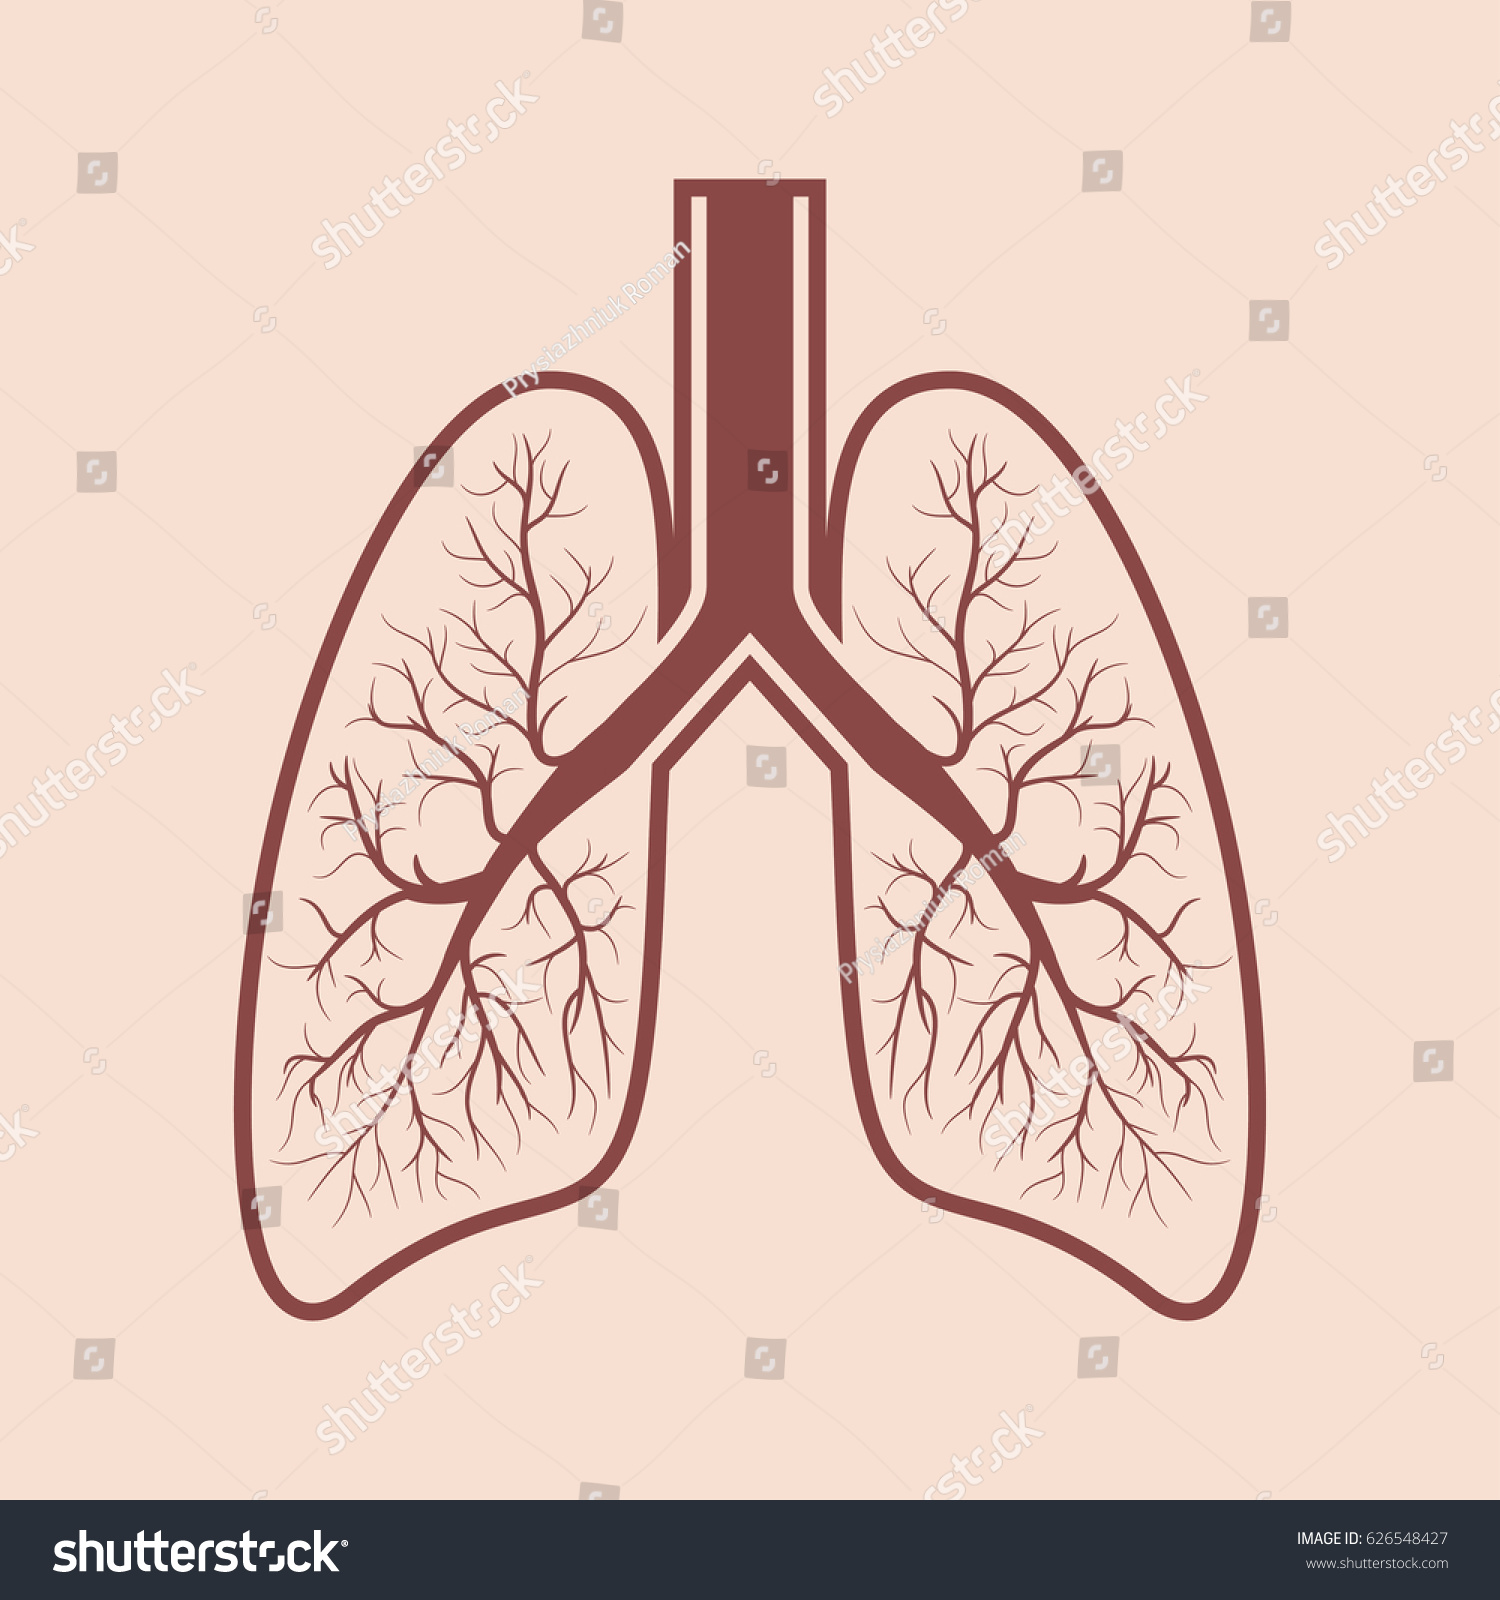 Human Lung Anatomy Respiratory System Graphics Stock Vector Royalty